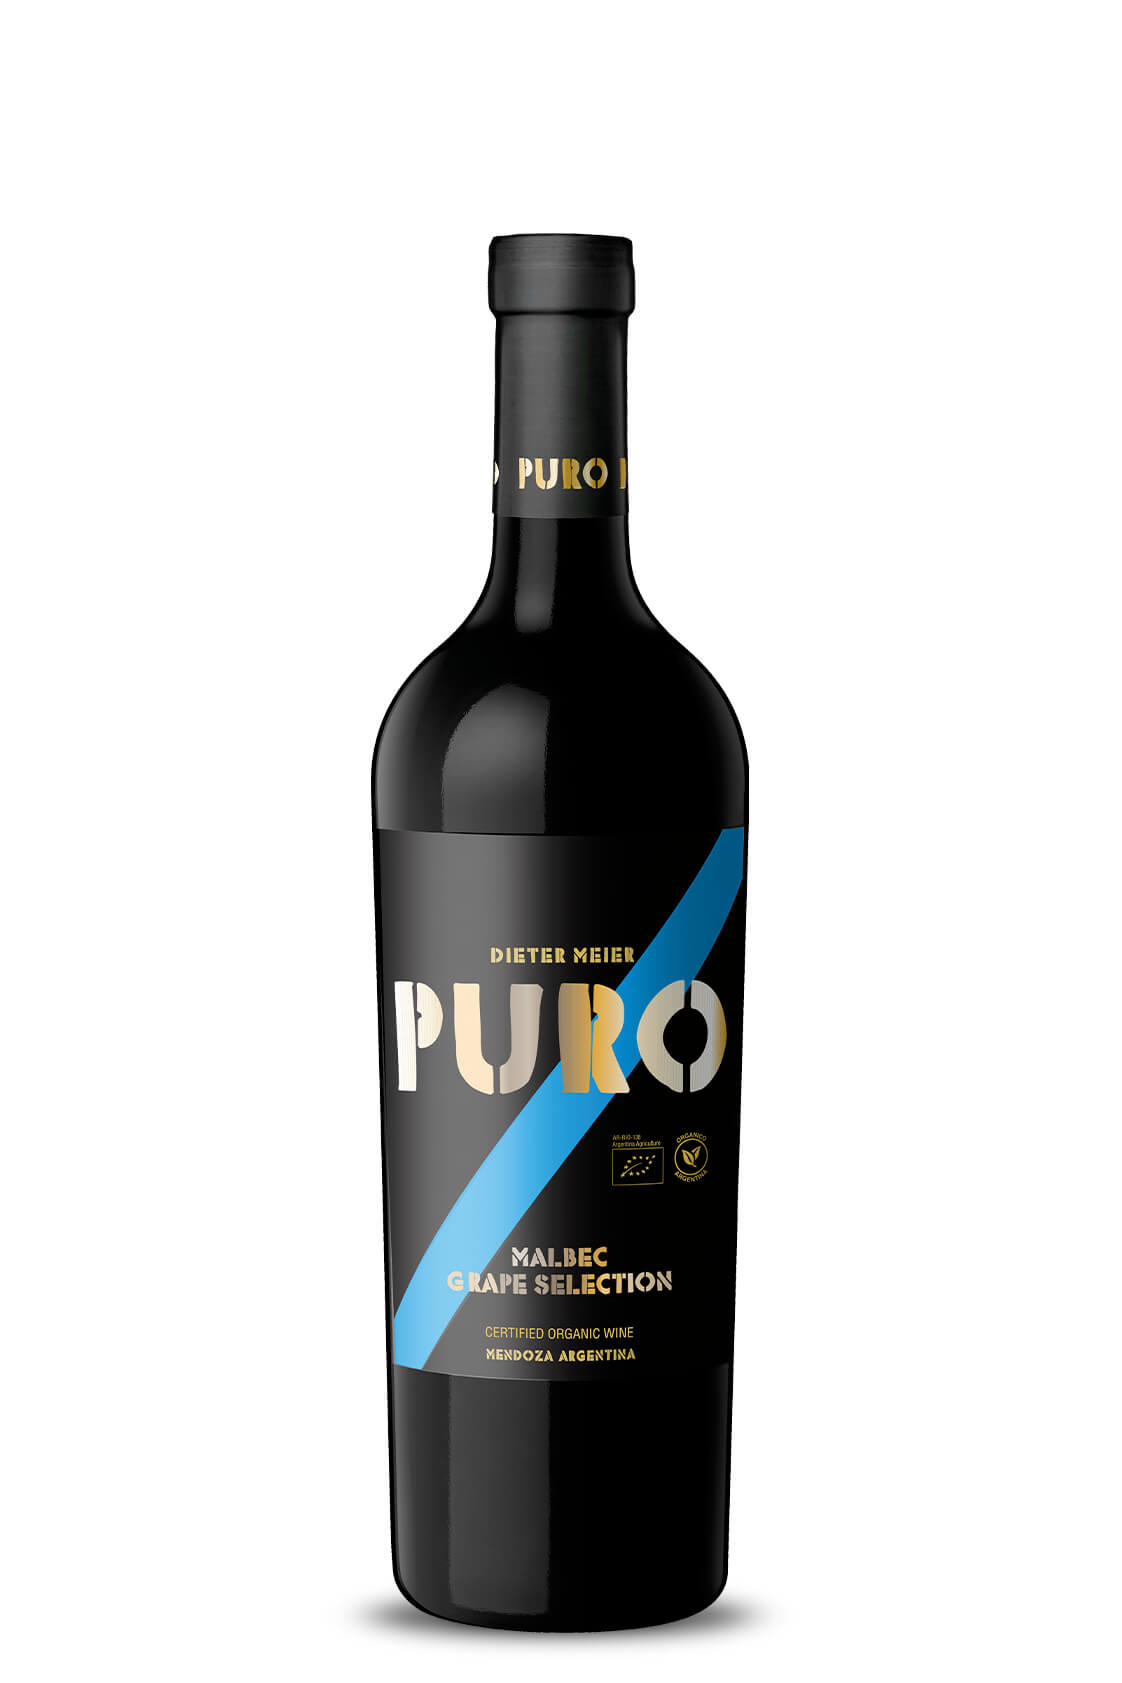 PURO Grape Selection «Malbec» 2018 – Ojo de Agua/ Dieter Meier